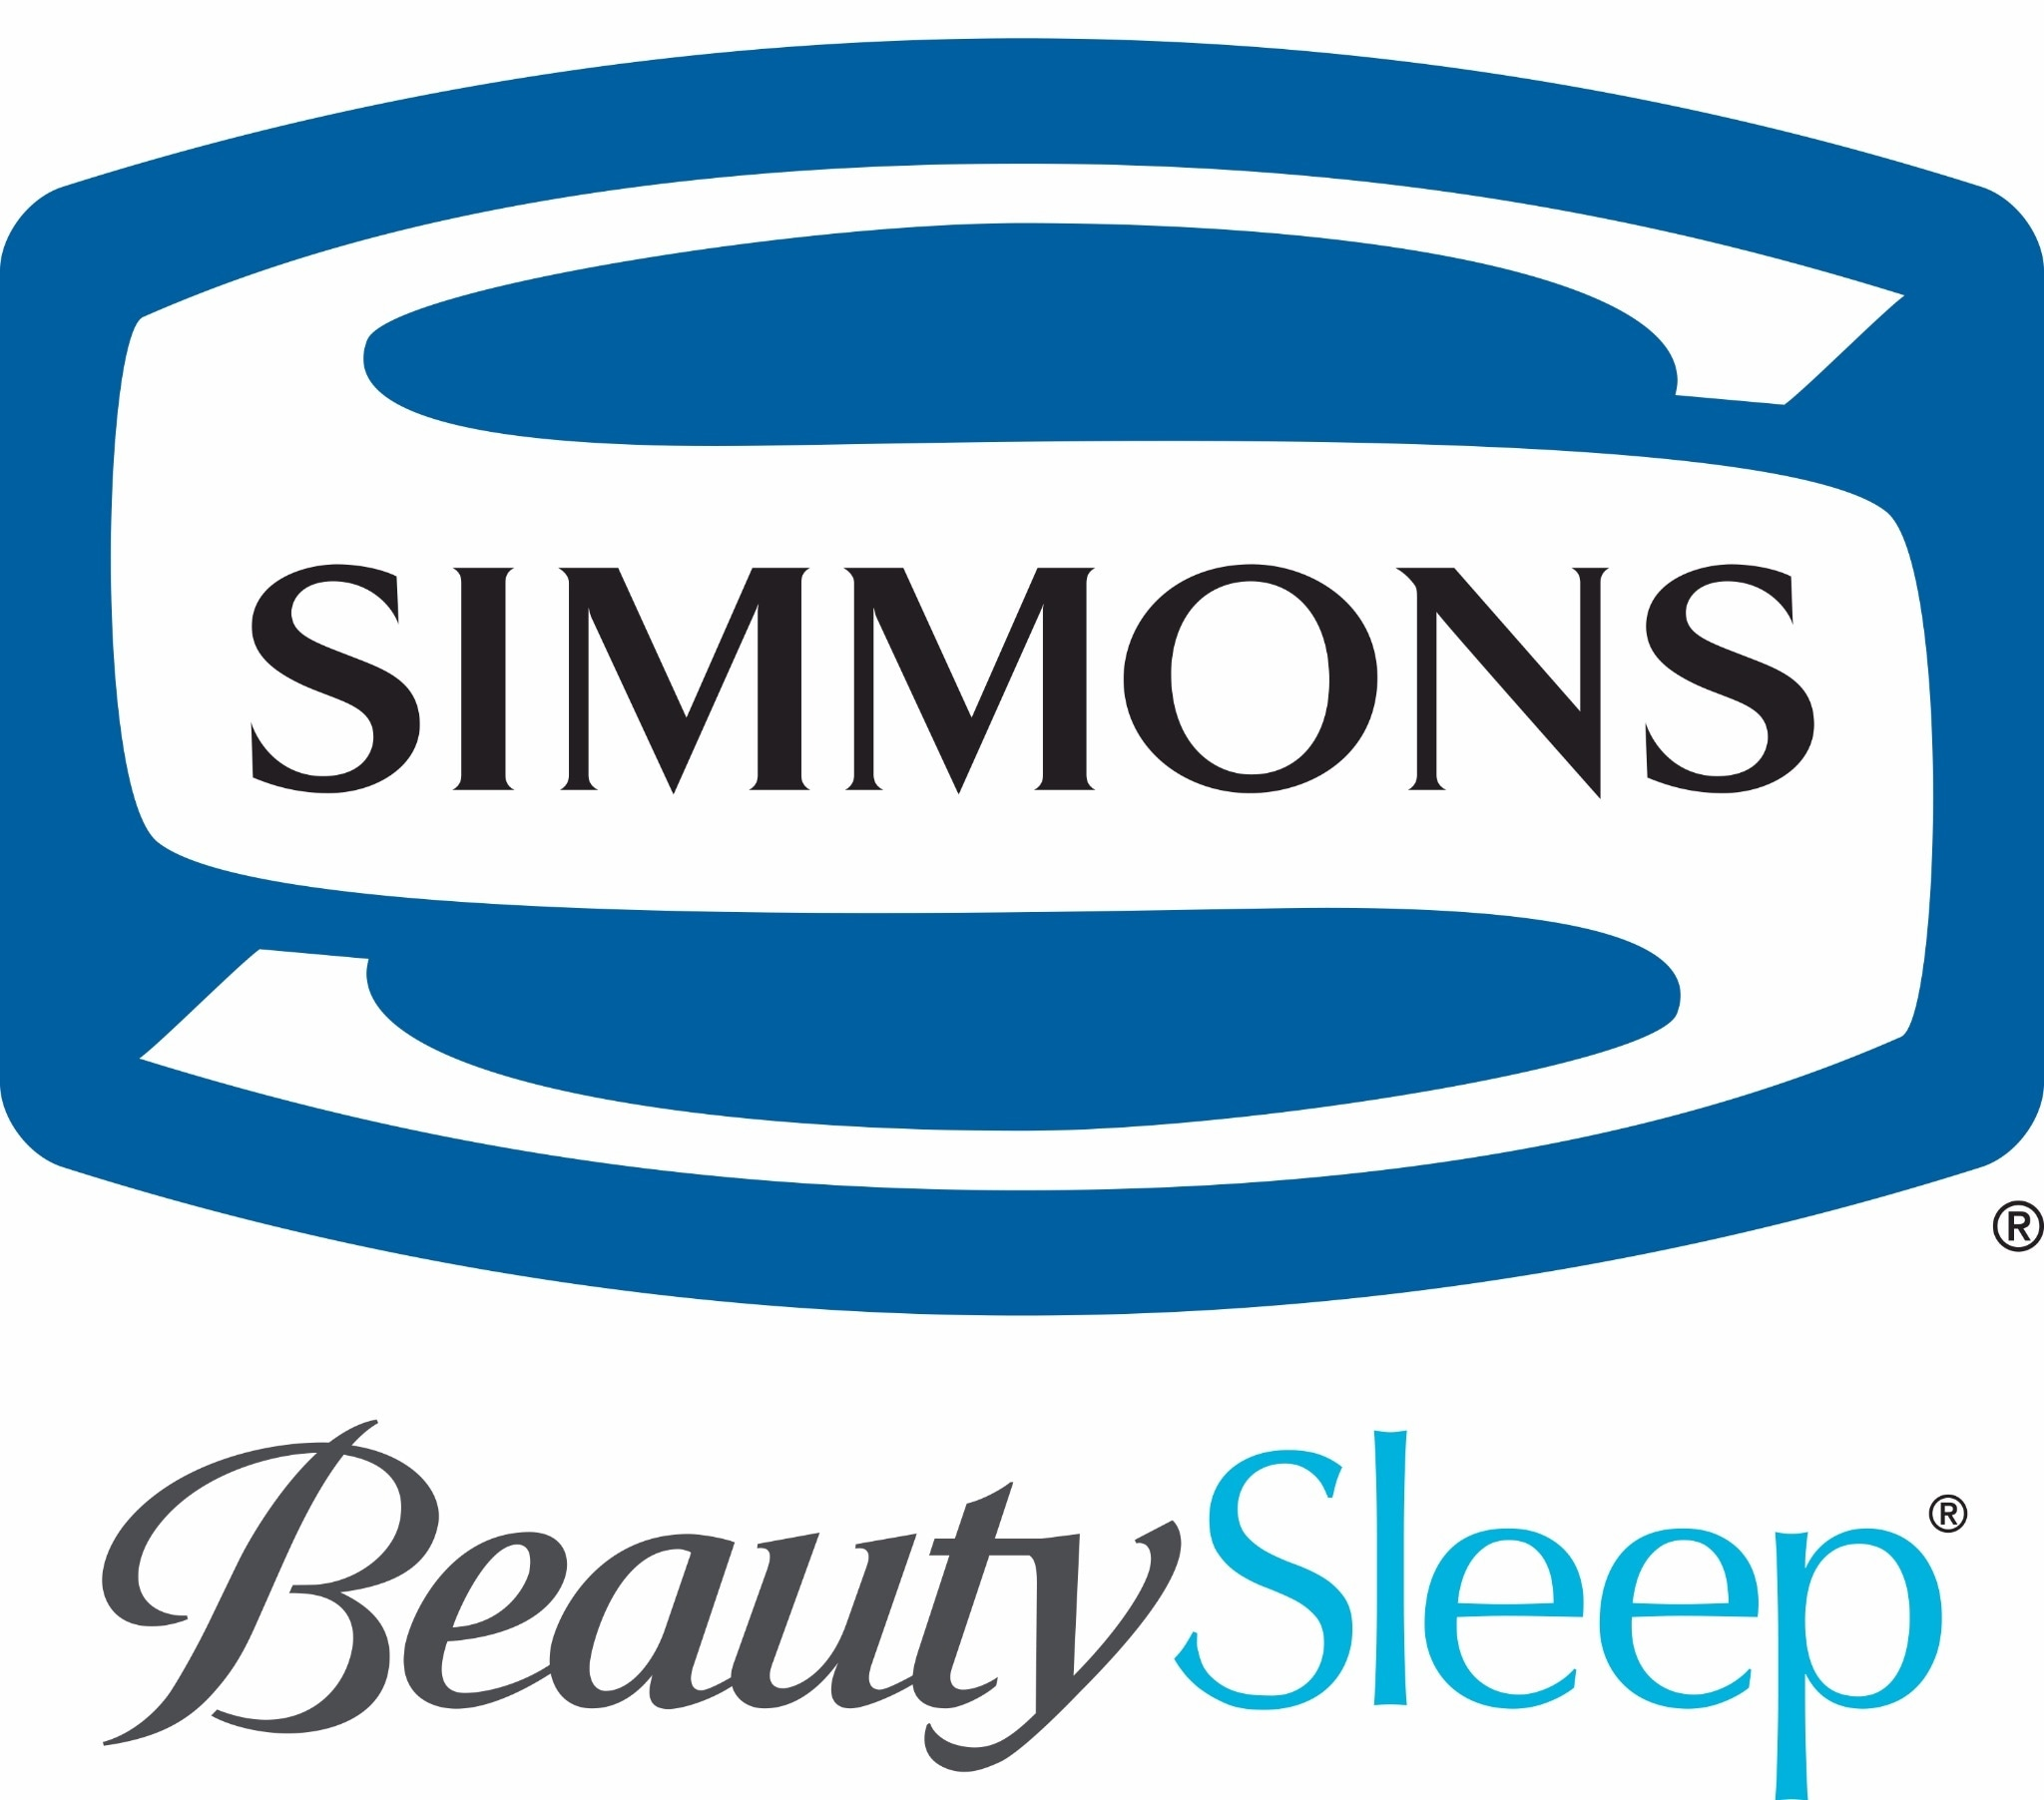 More Simmons deals